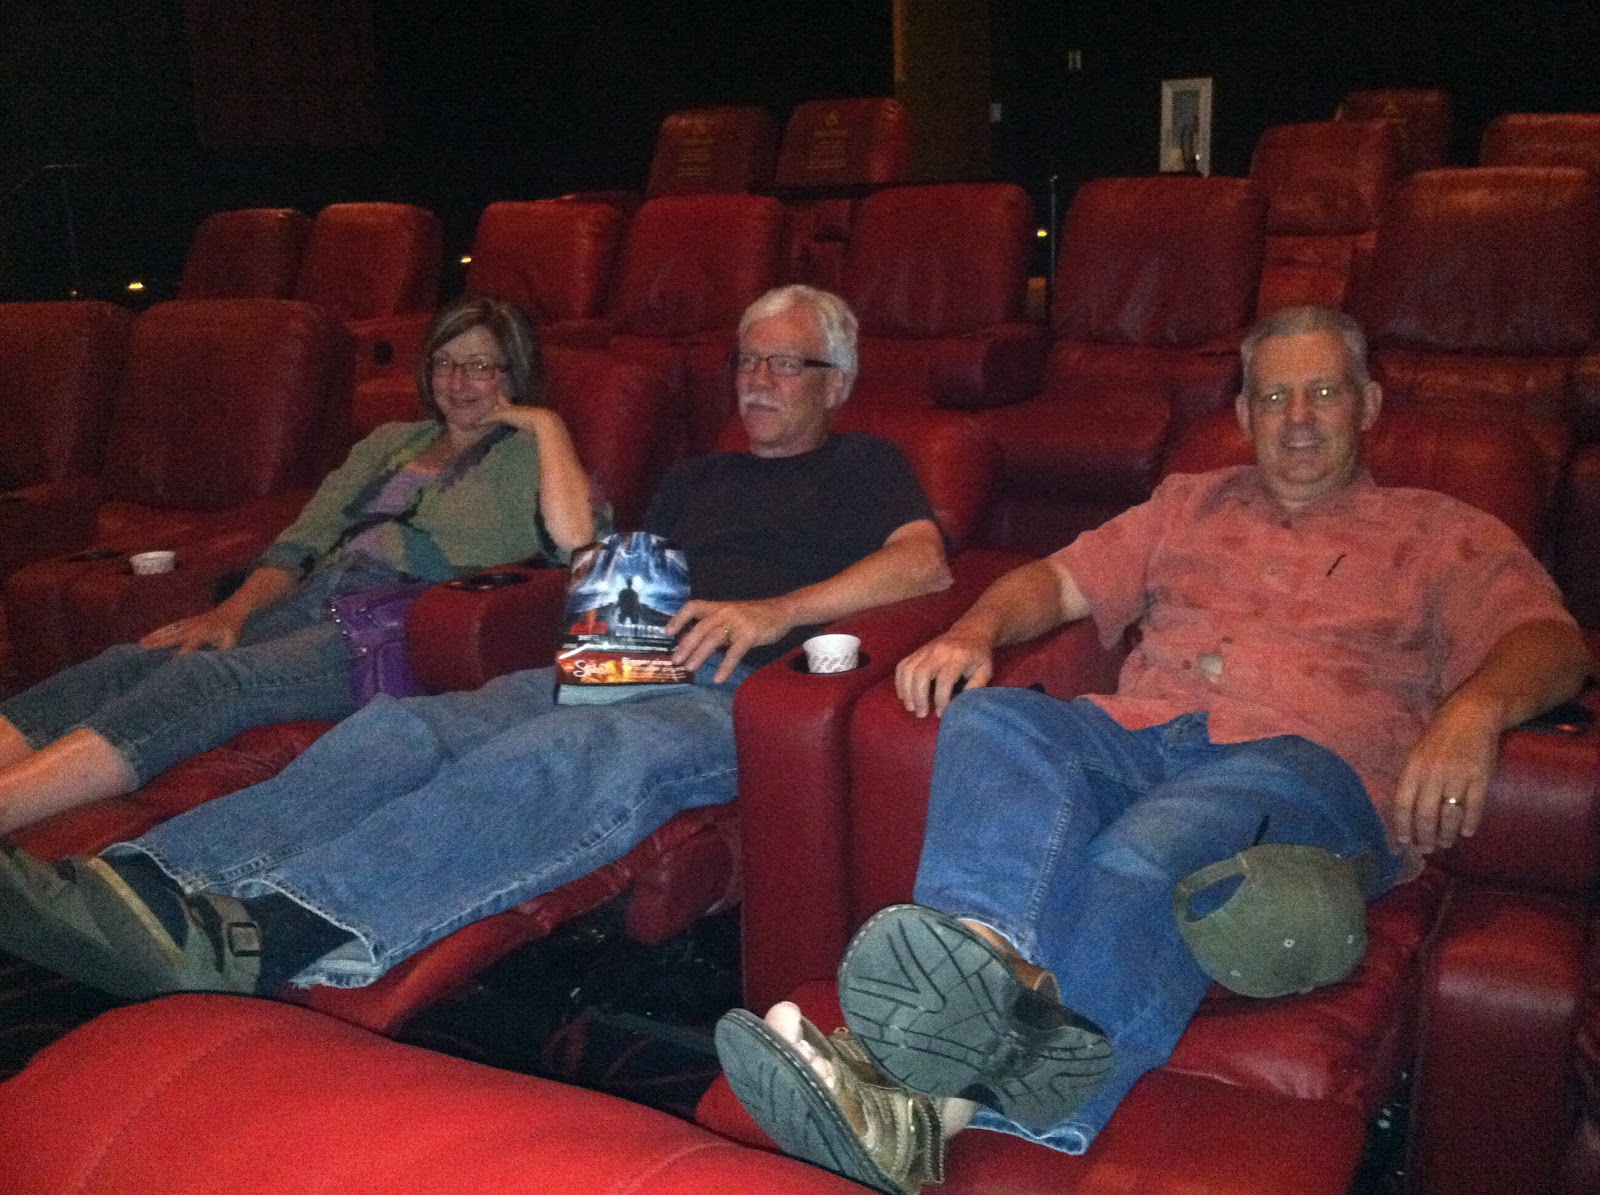 Movie with friends...comfy AMC theatre seats | Gratitude Through ...